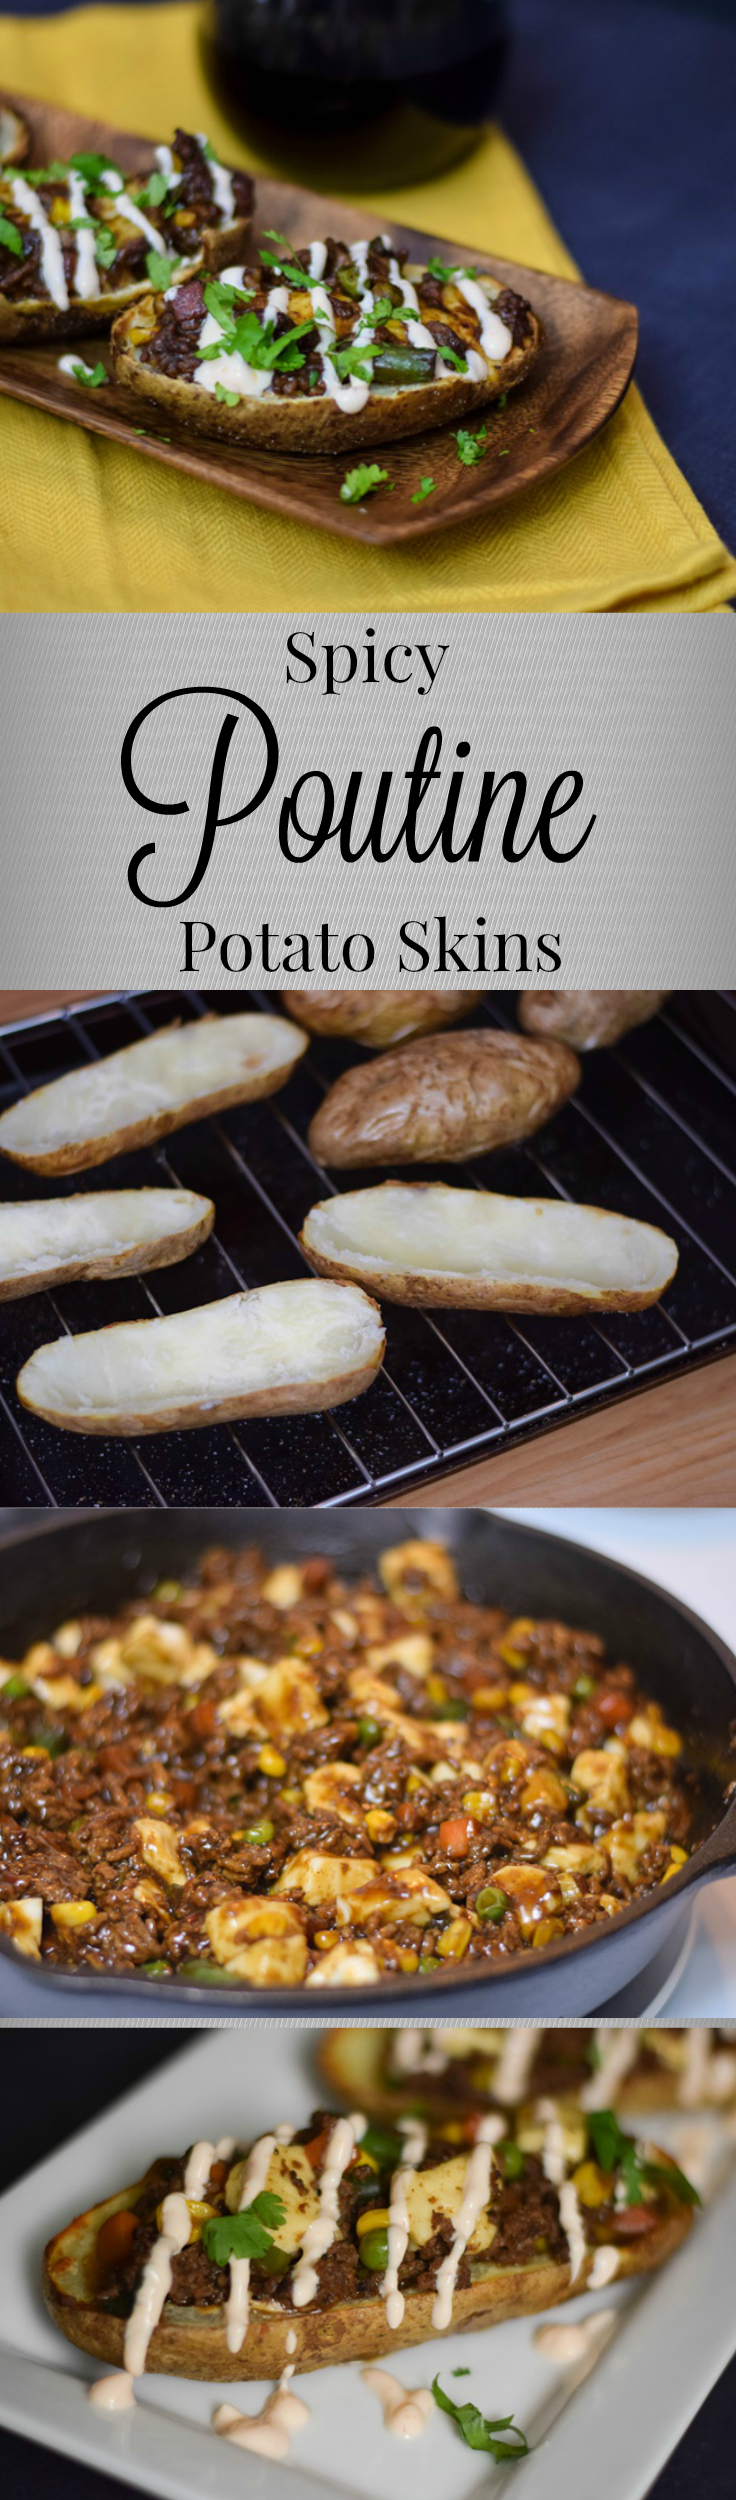 Spicy Poutine Potato Skins